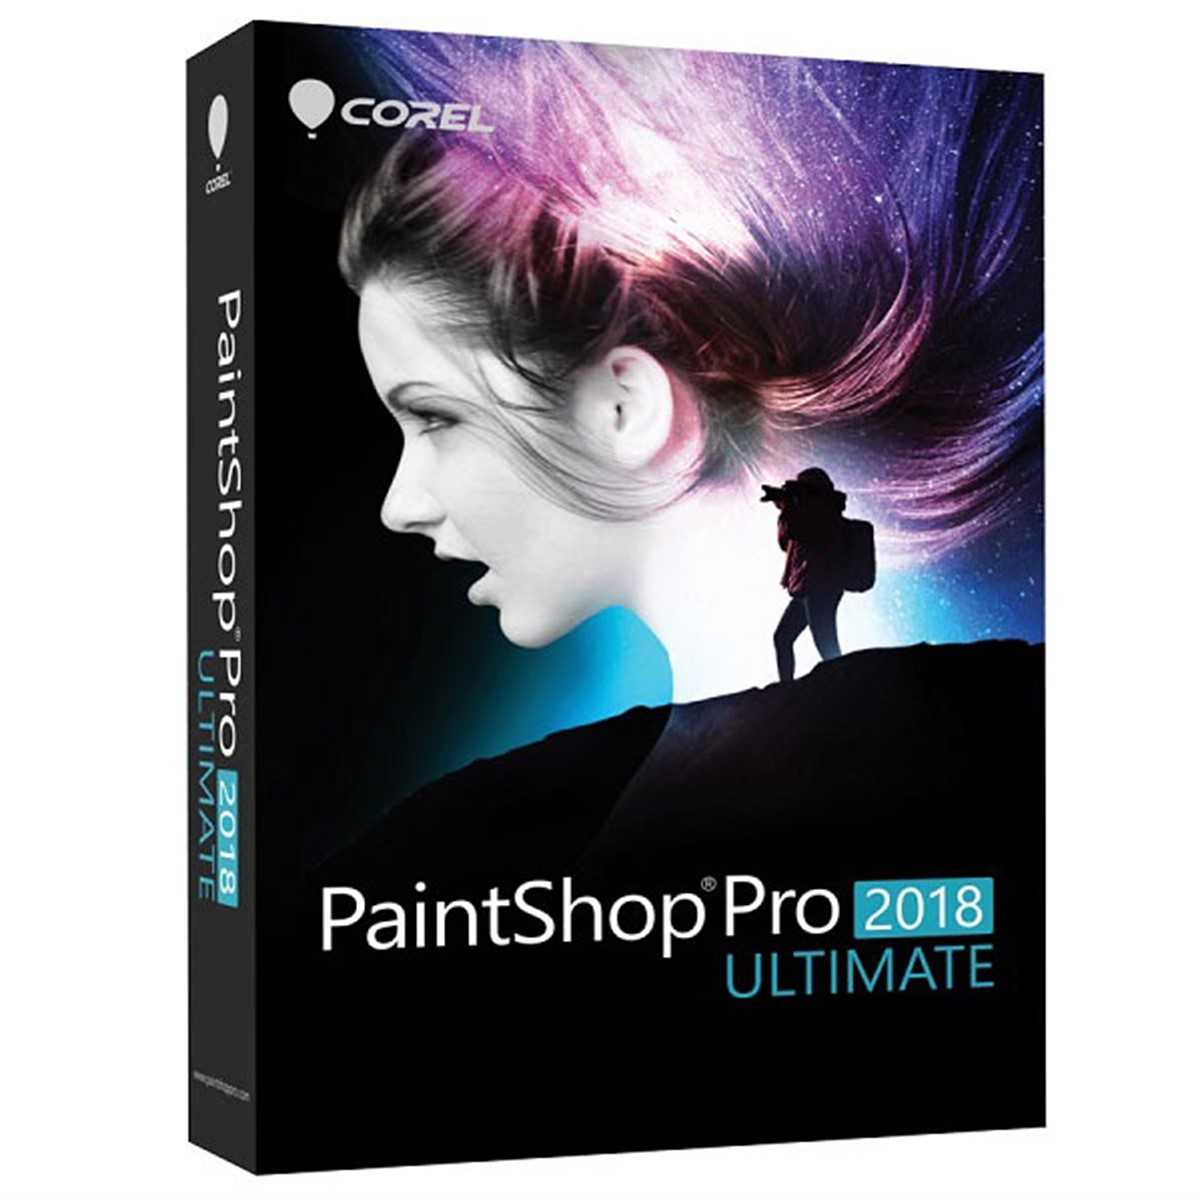 Corel launches PaintShop Pro 2018 with improved editing